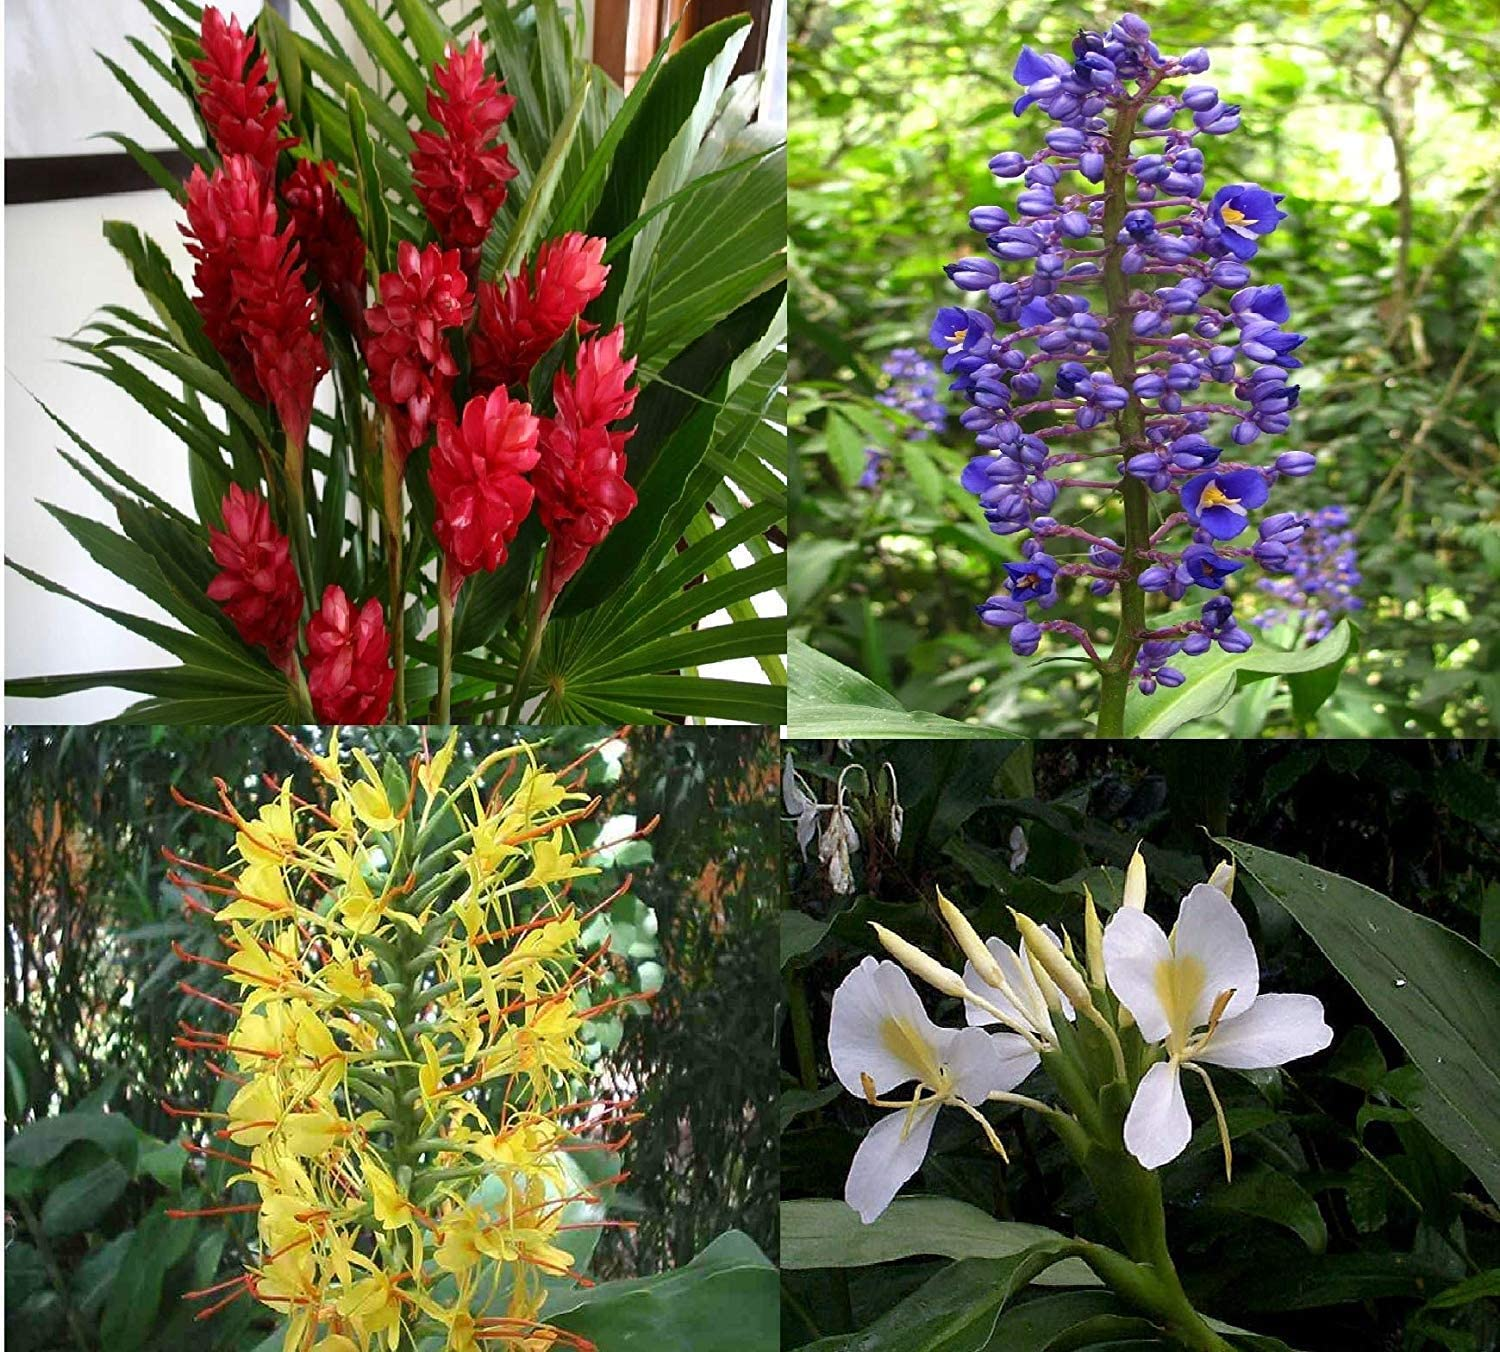 Ginger Opening large release sale Plant Root Red Blue 4 Overseas parallel import regular item Yellow White Hawaiian